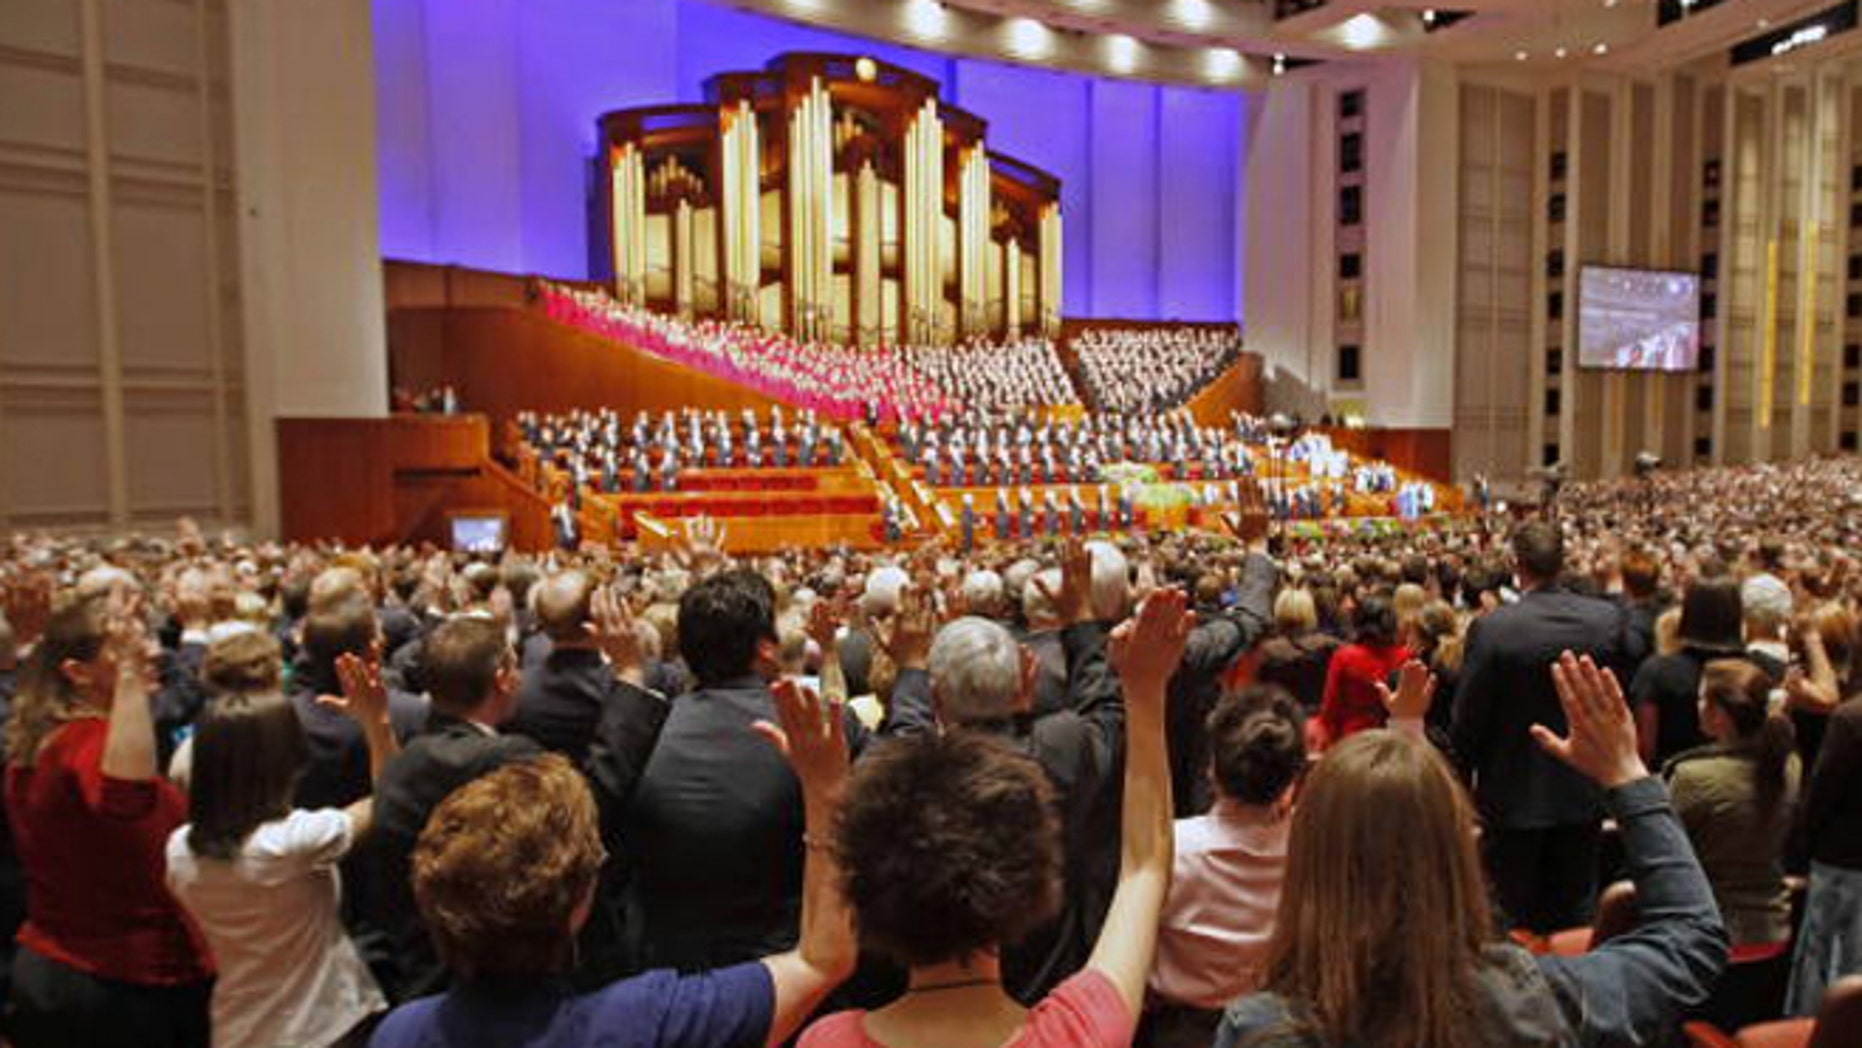 Those part of the Mormon Church are usually expected to vote Republican, but who will they pick this year? (Photo by George Frey/Getty Images)